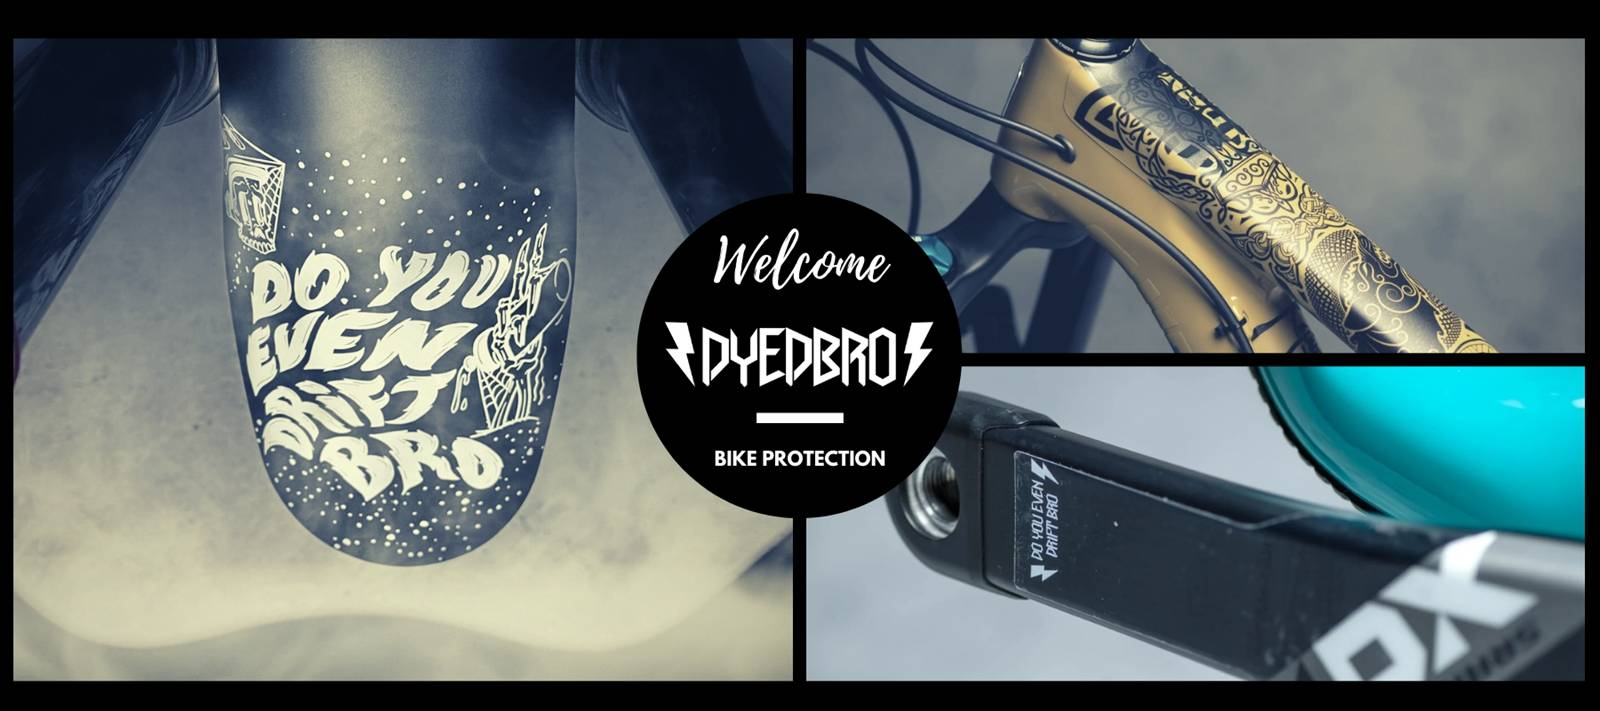 Welcome Dyedbro! The coolest way to protect your bìke